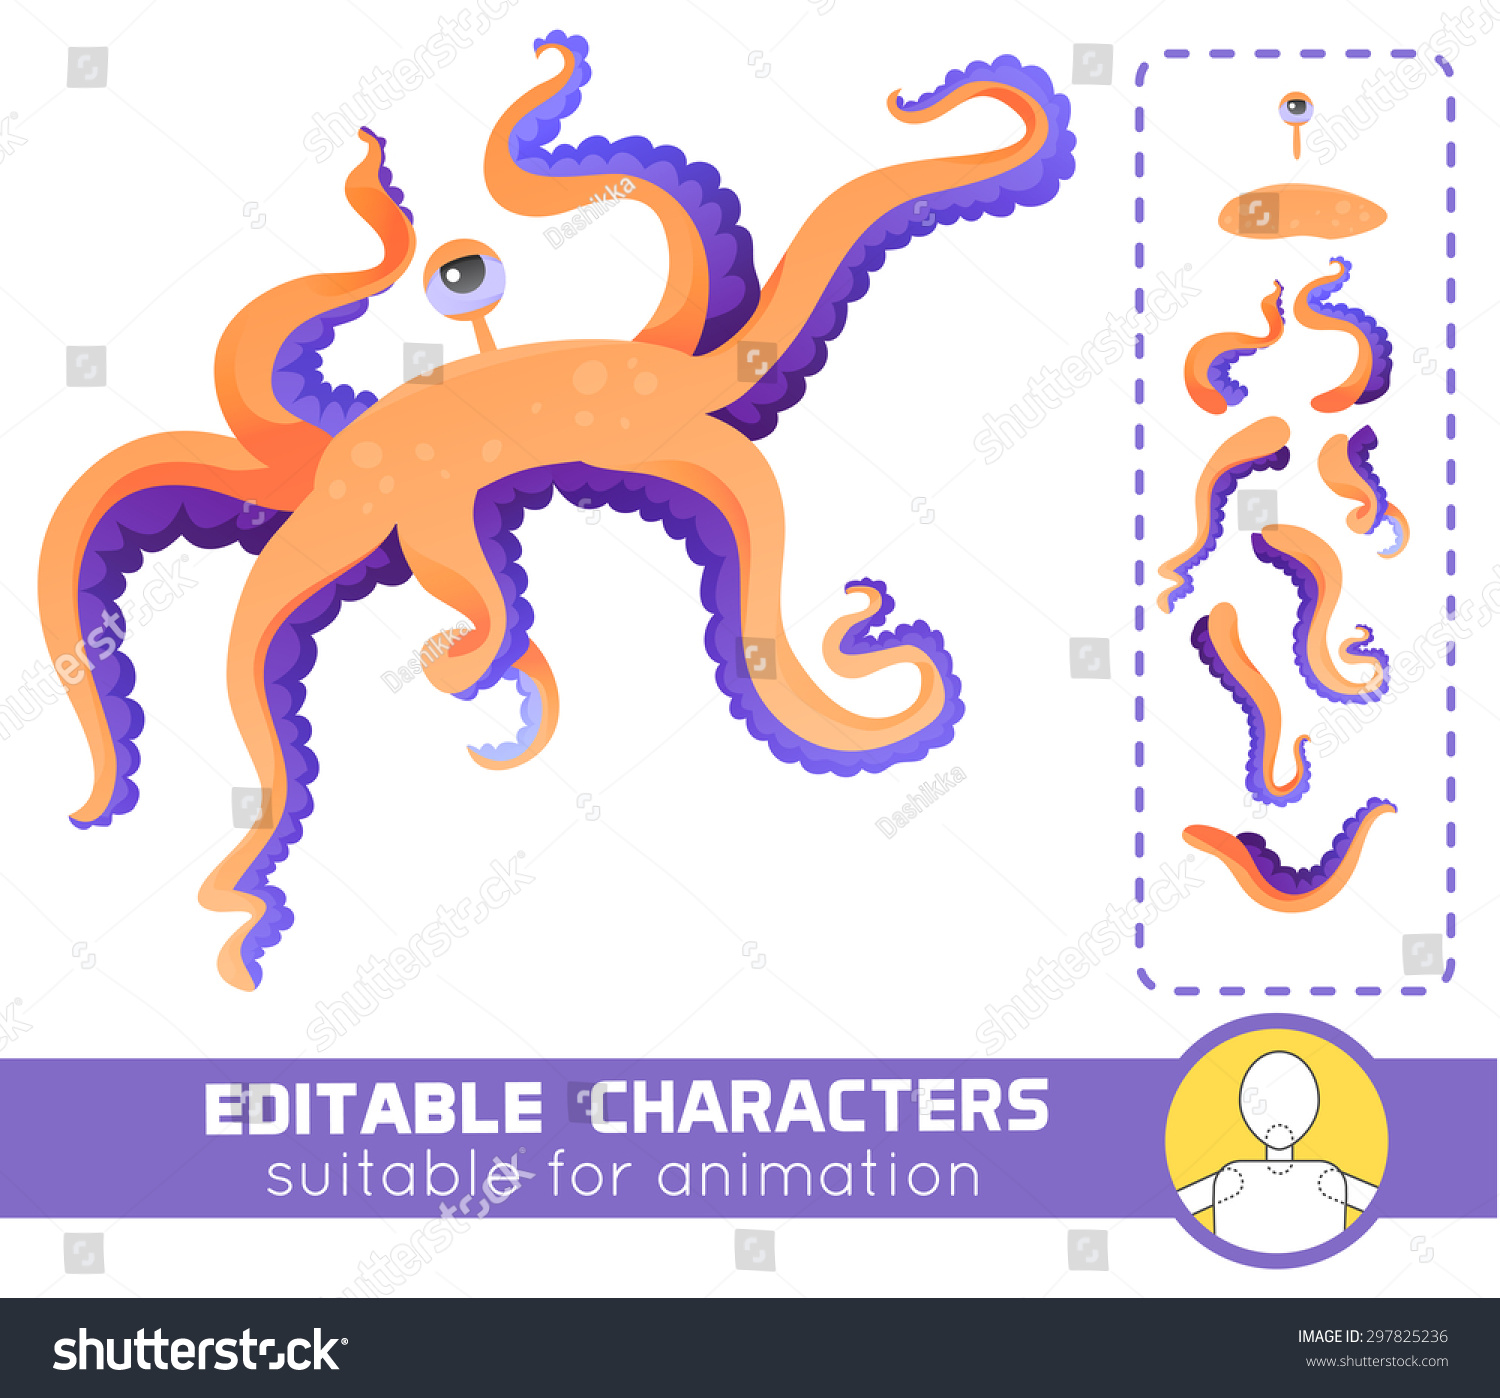 Water Funny Pictures Stock Vector Cute And Funny Water Monster With